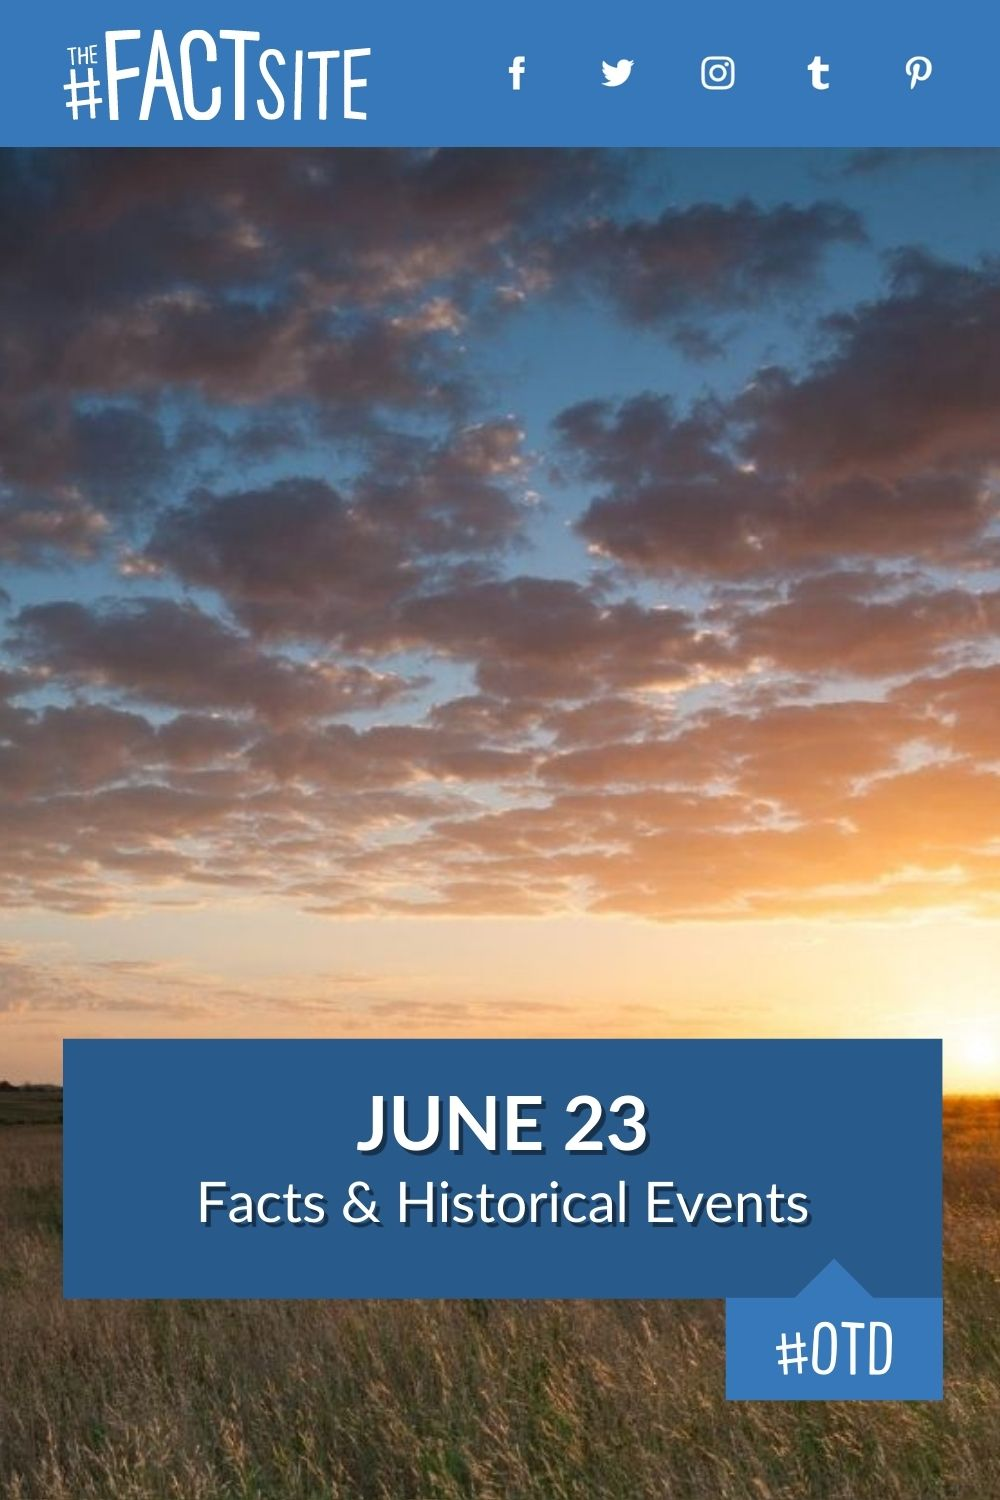 Facts & Historic Events That Happened on June 23